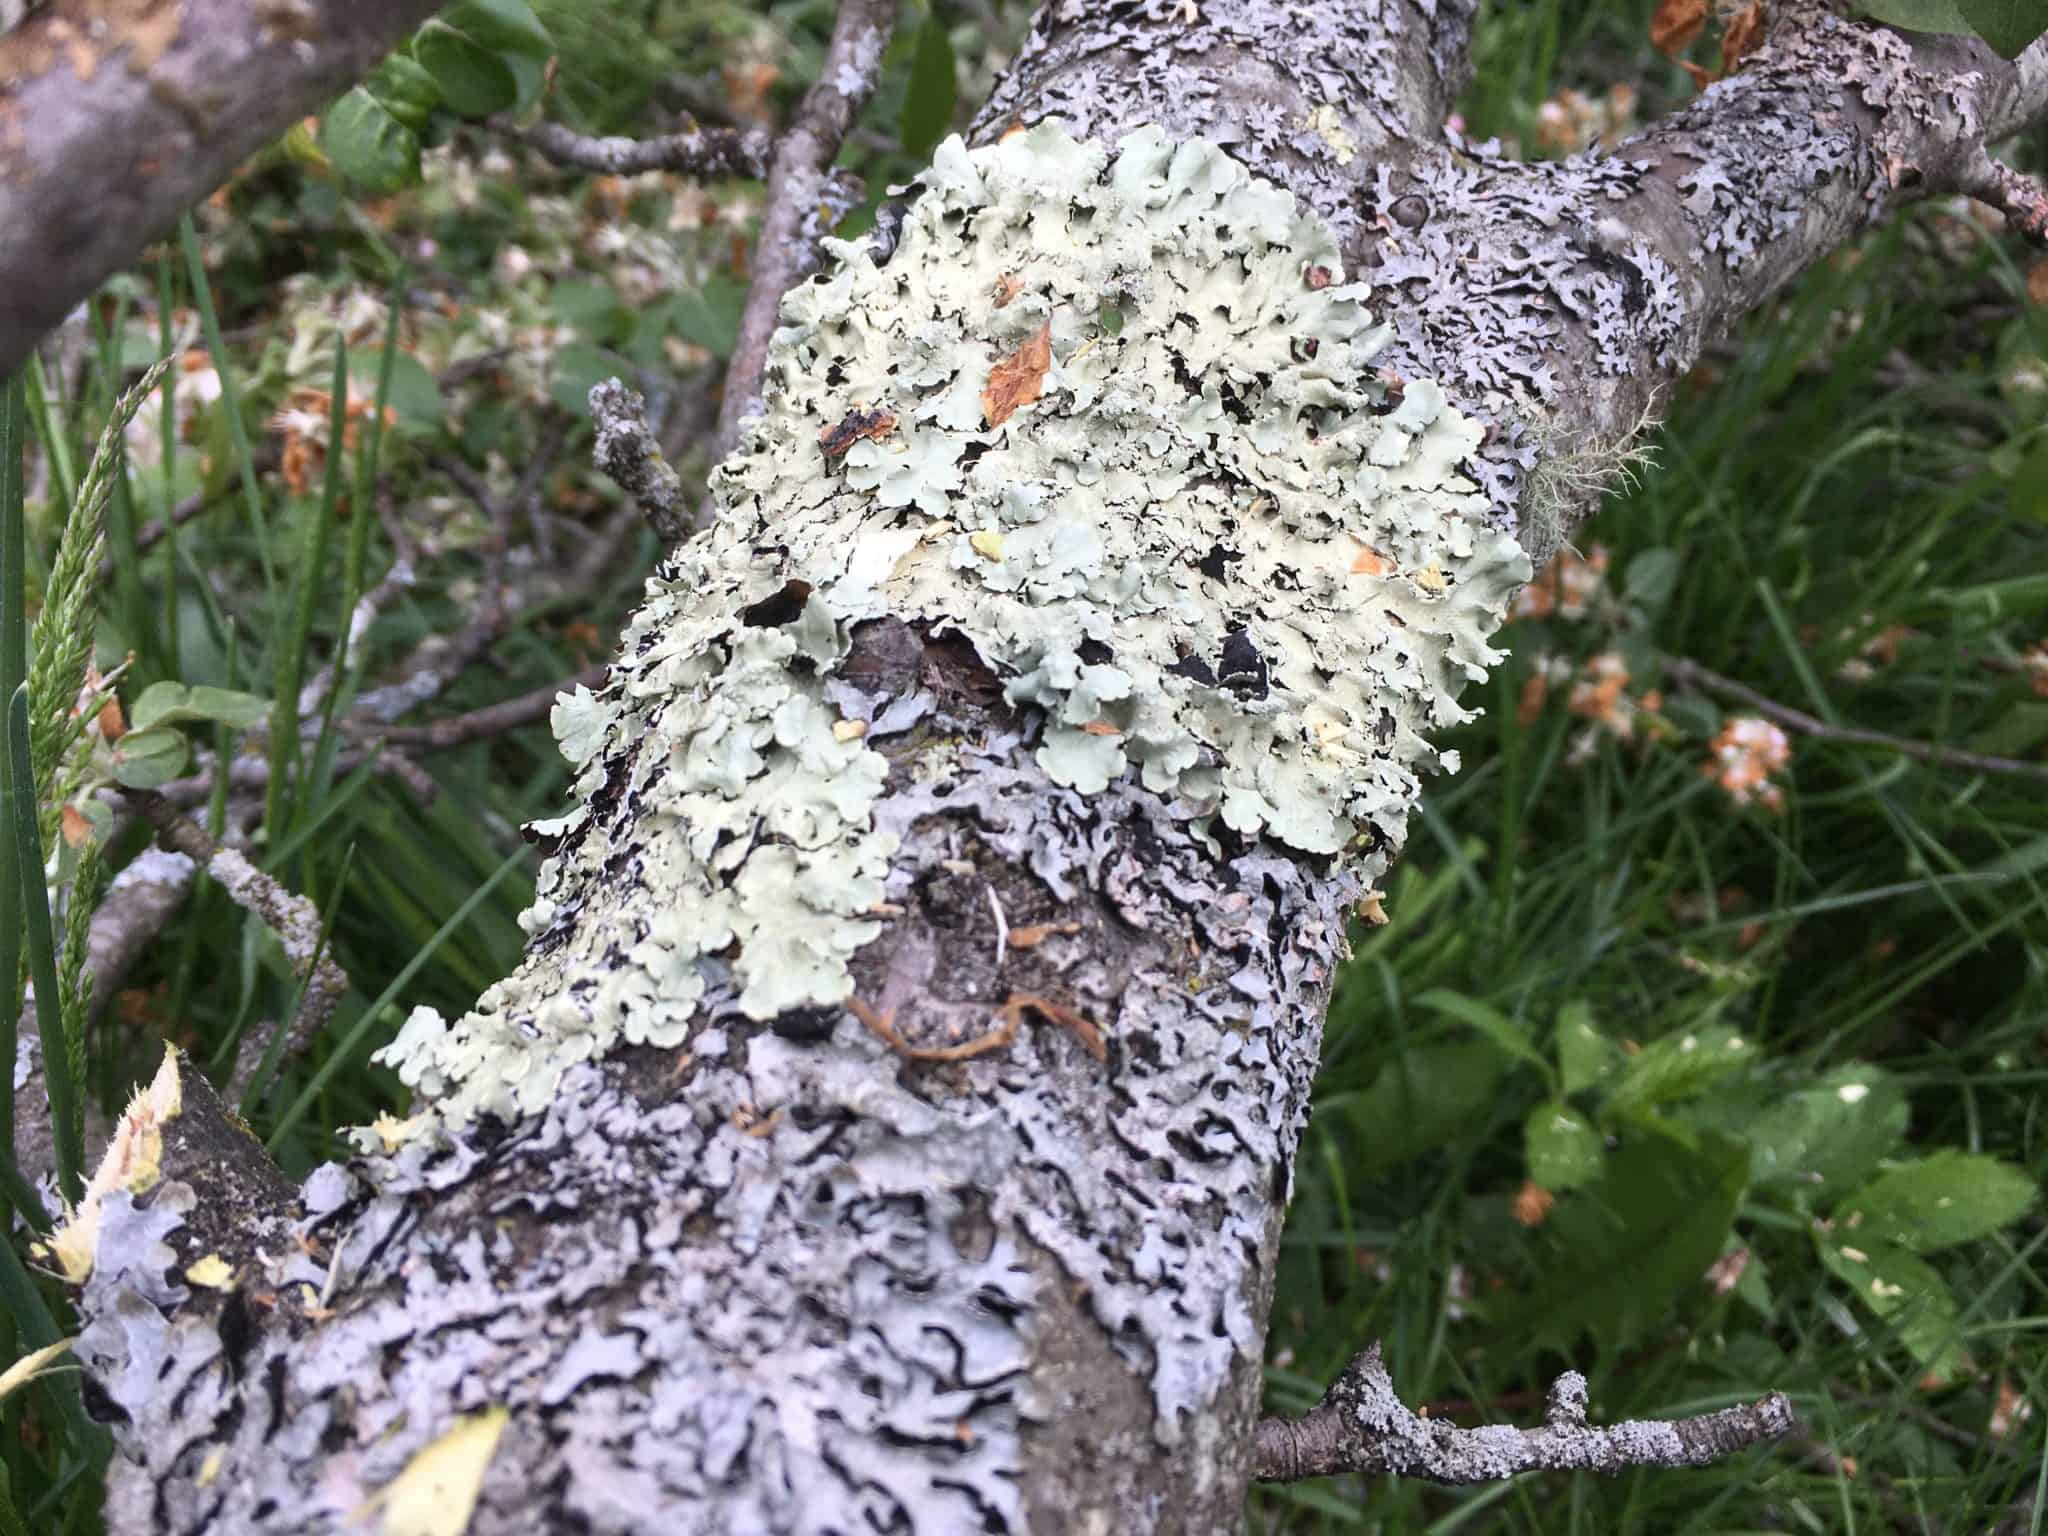 Lichen in the Orchard